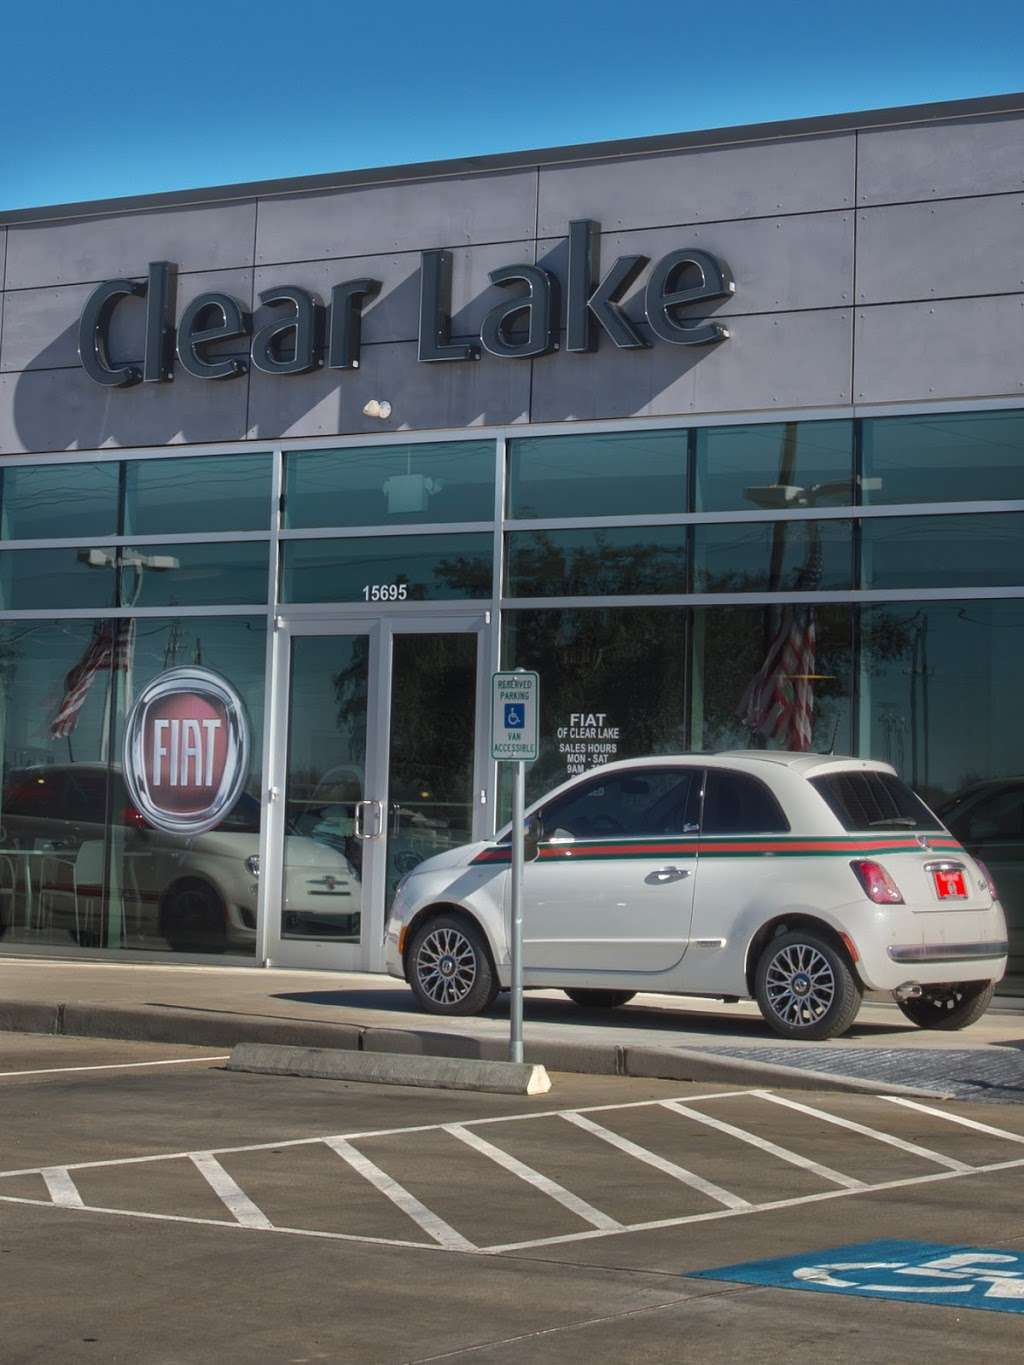 fiat of clear lake - car dealer | 15695 gulf fwy, webster, tx 77598, usa